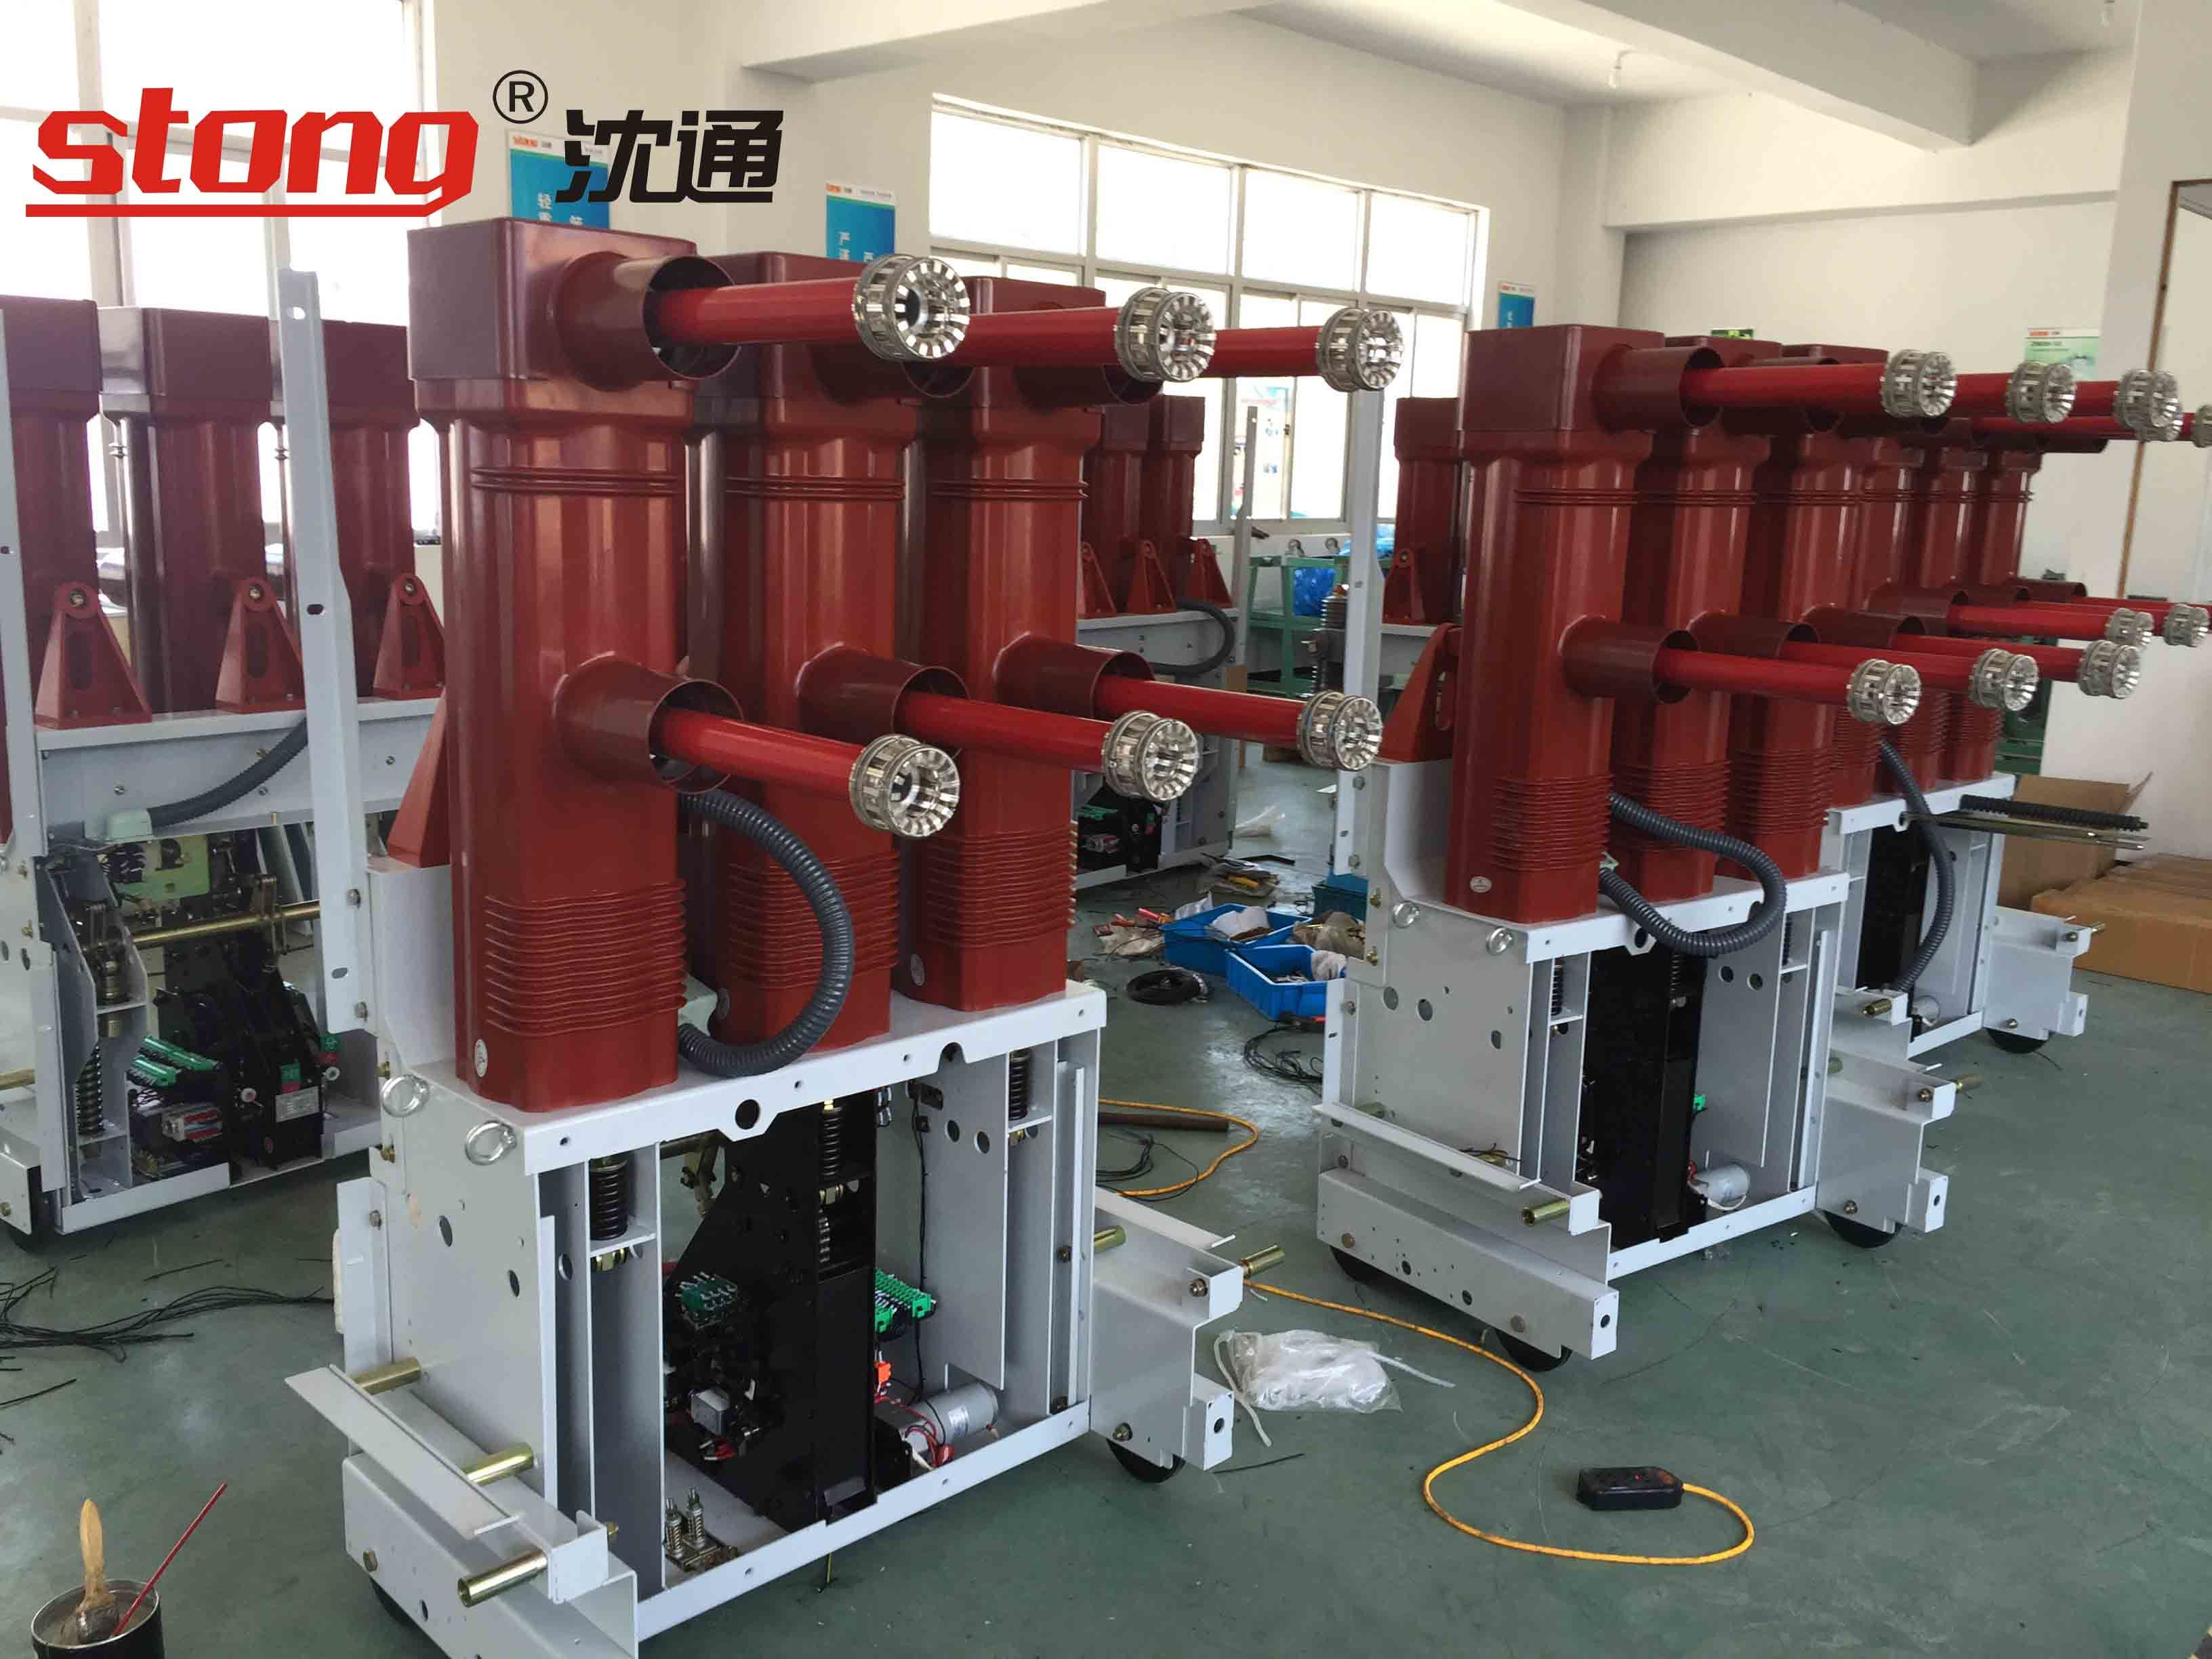 Stong Vs1 12kv Indoor Vcb Vacuum Circuit Breaker